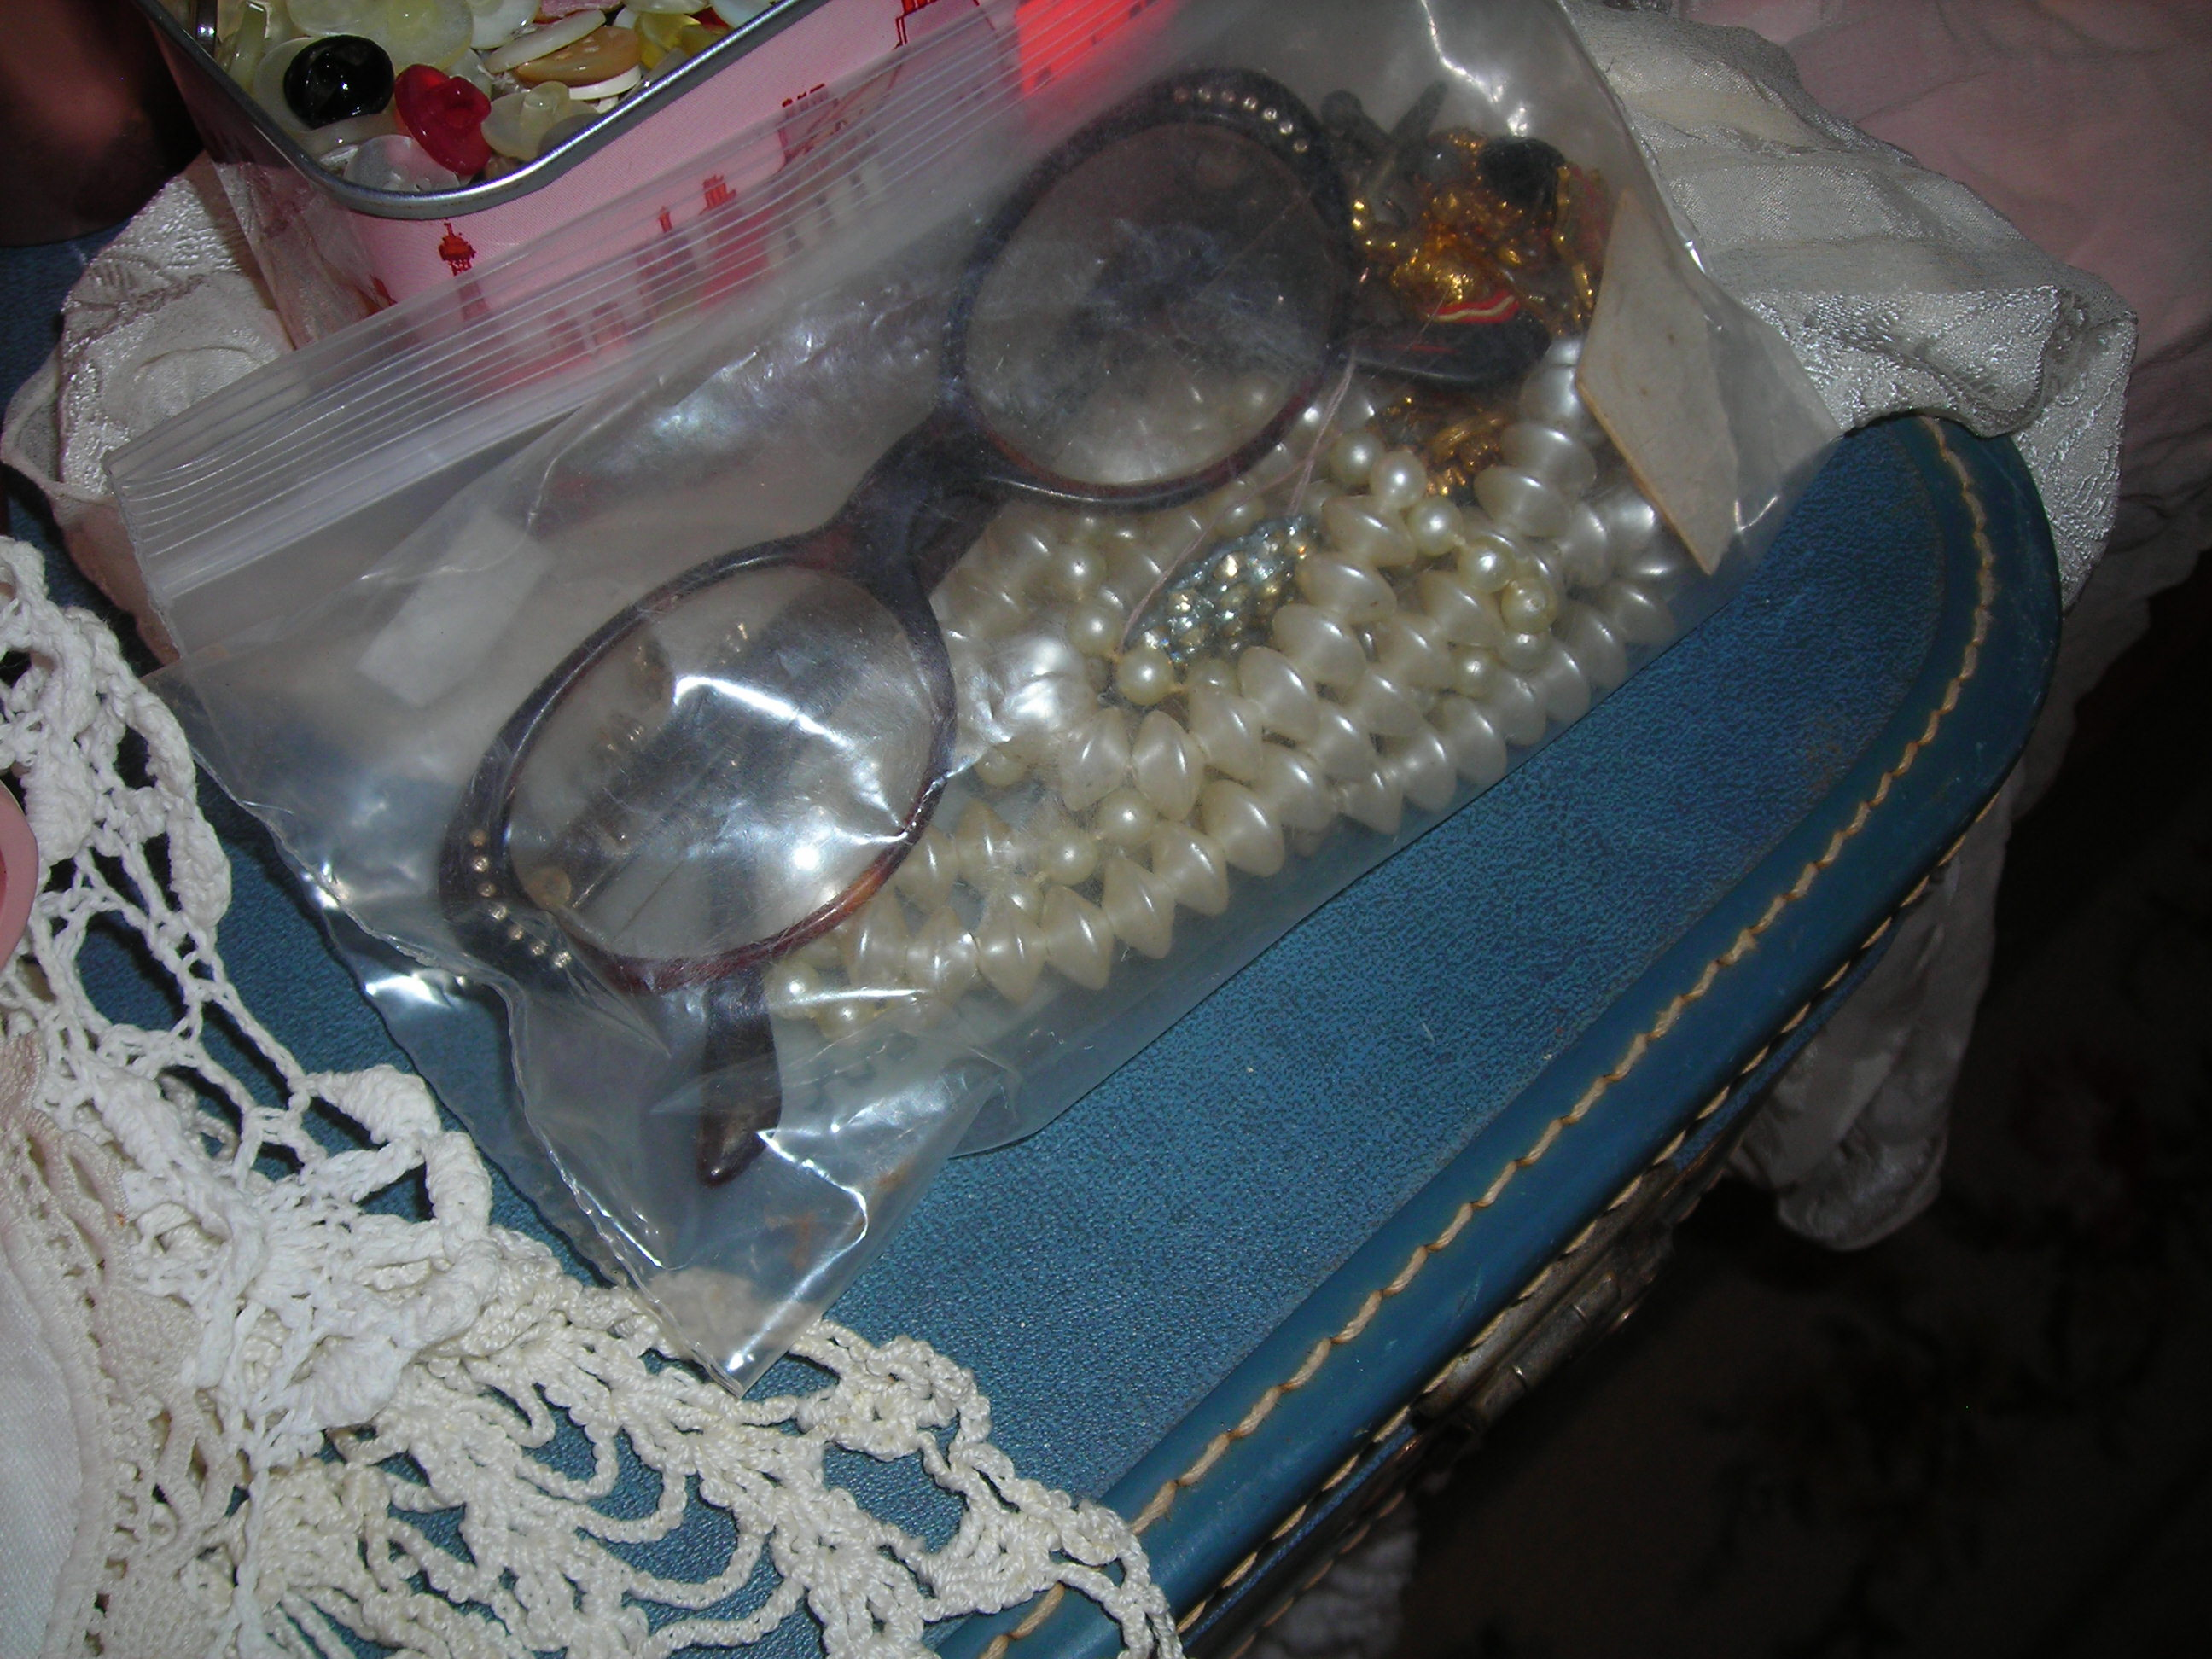 to DIE for vintage eyeglasses bagged up with some bling